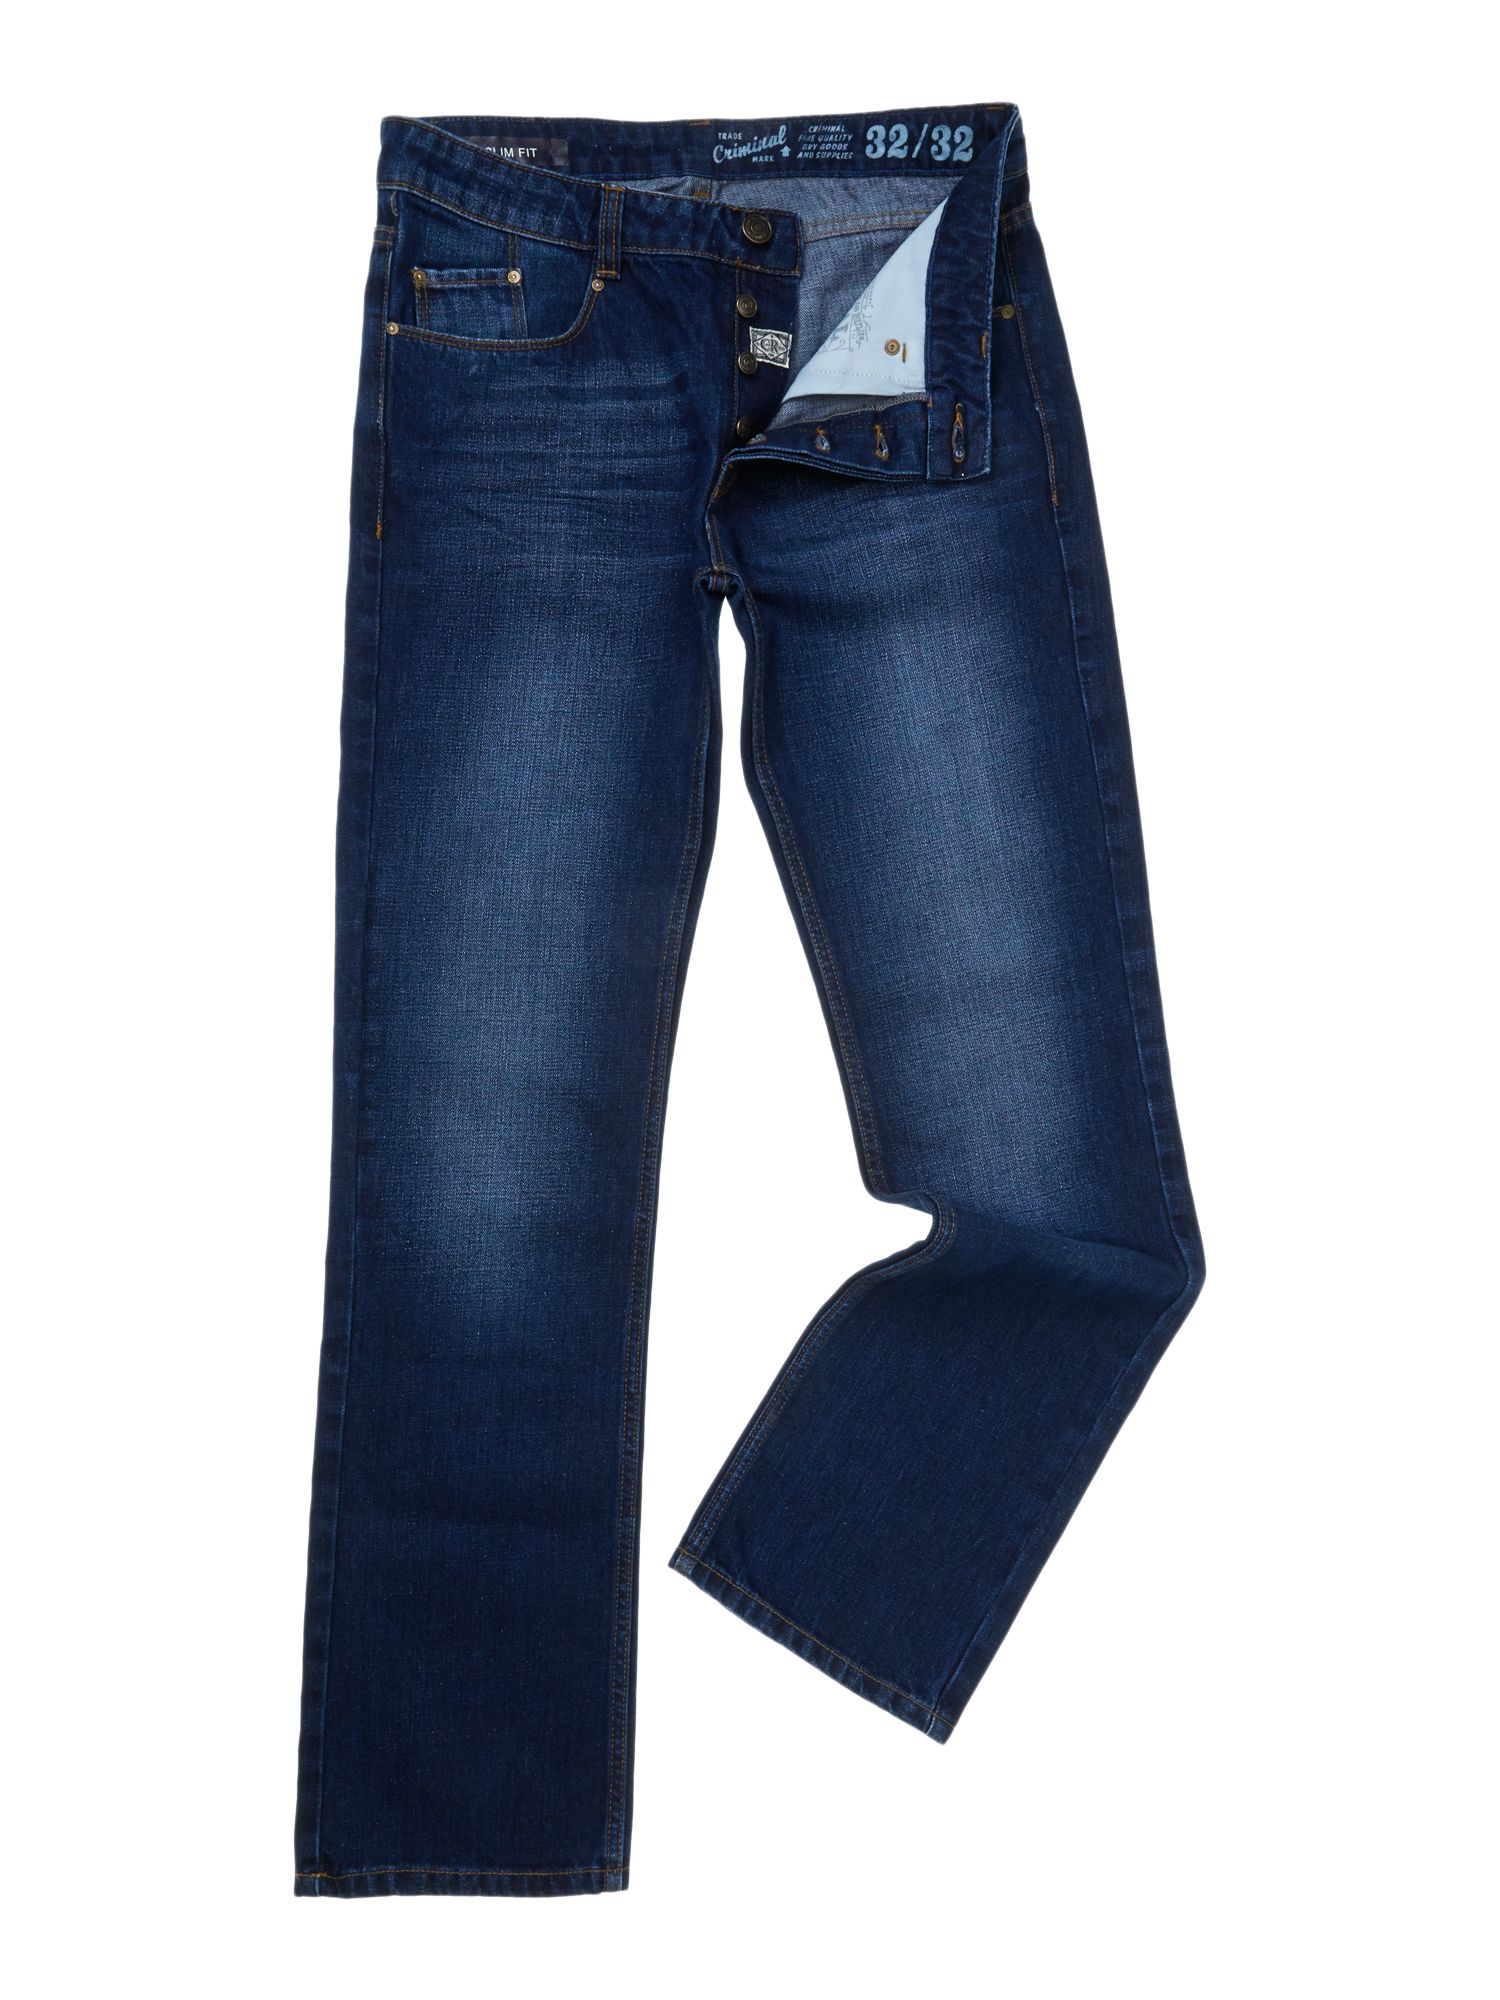 True indigo denim jeans